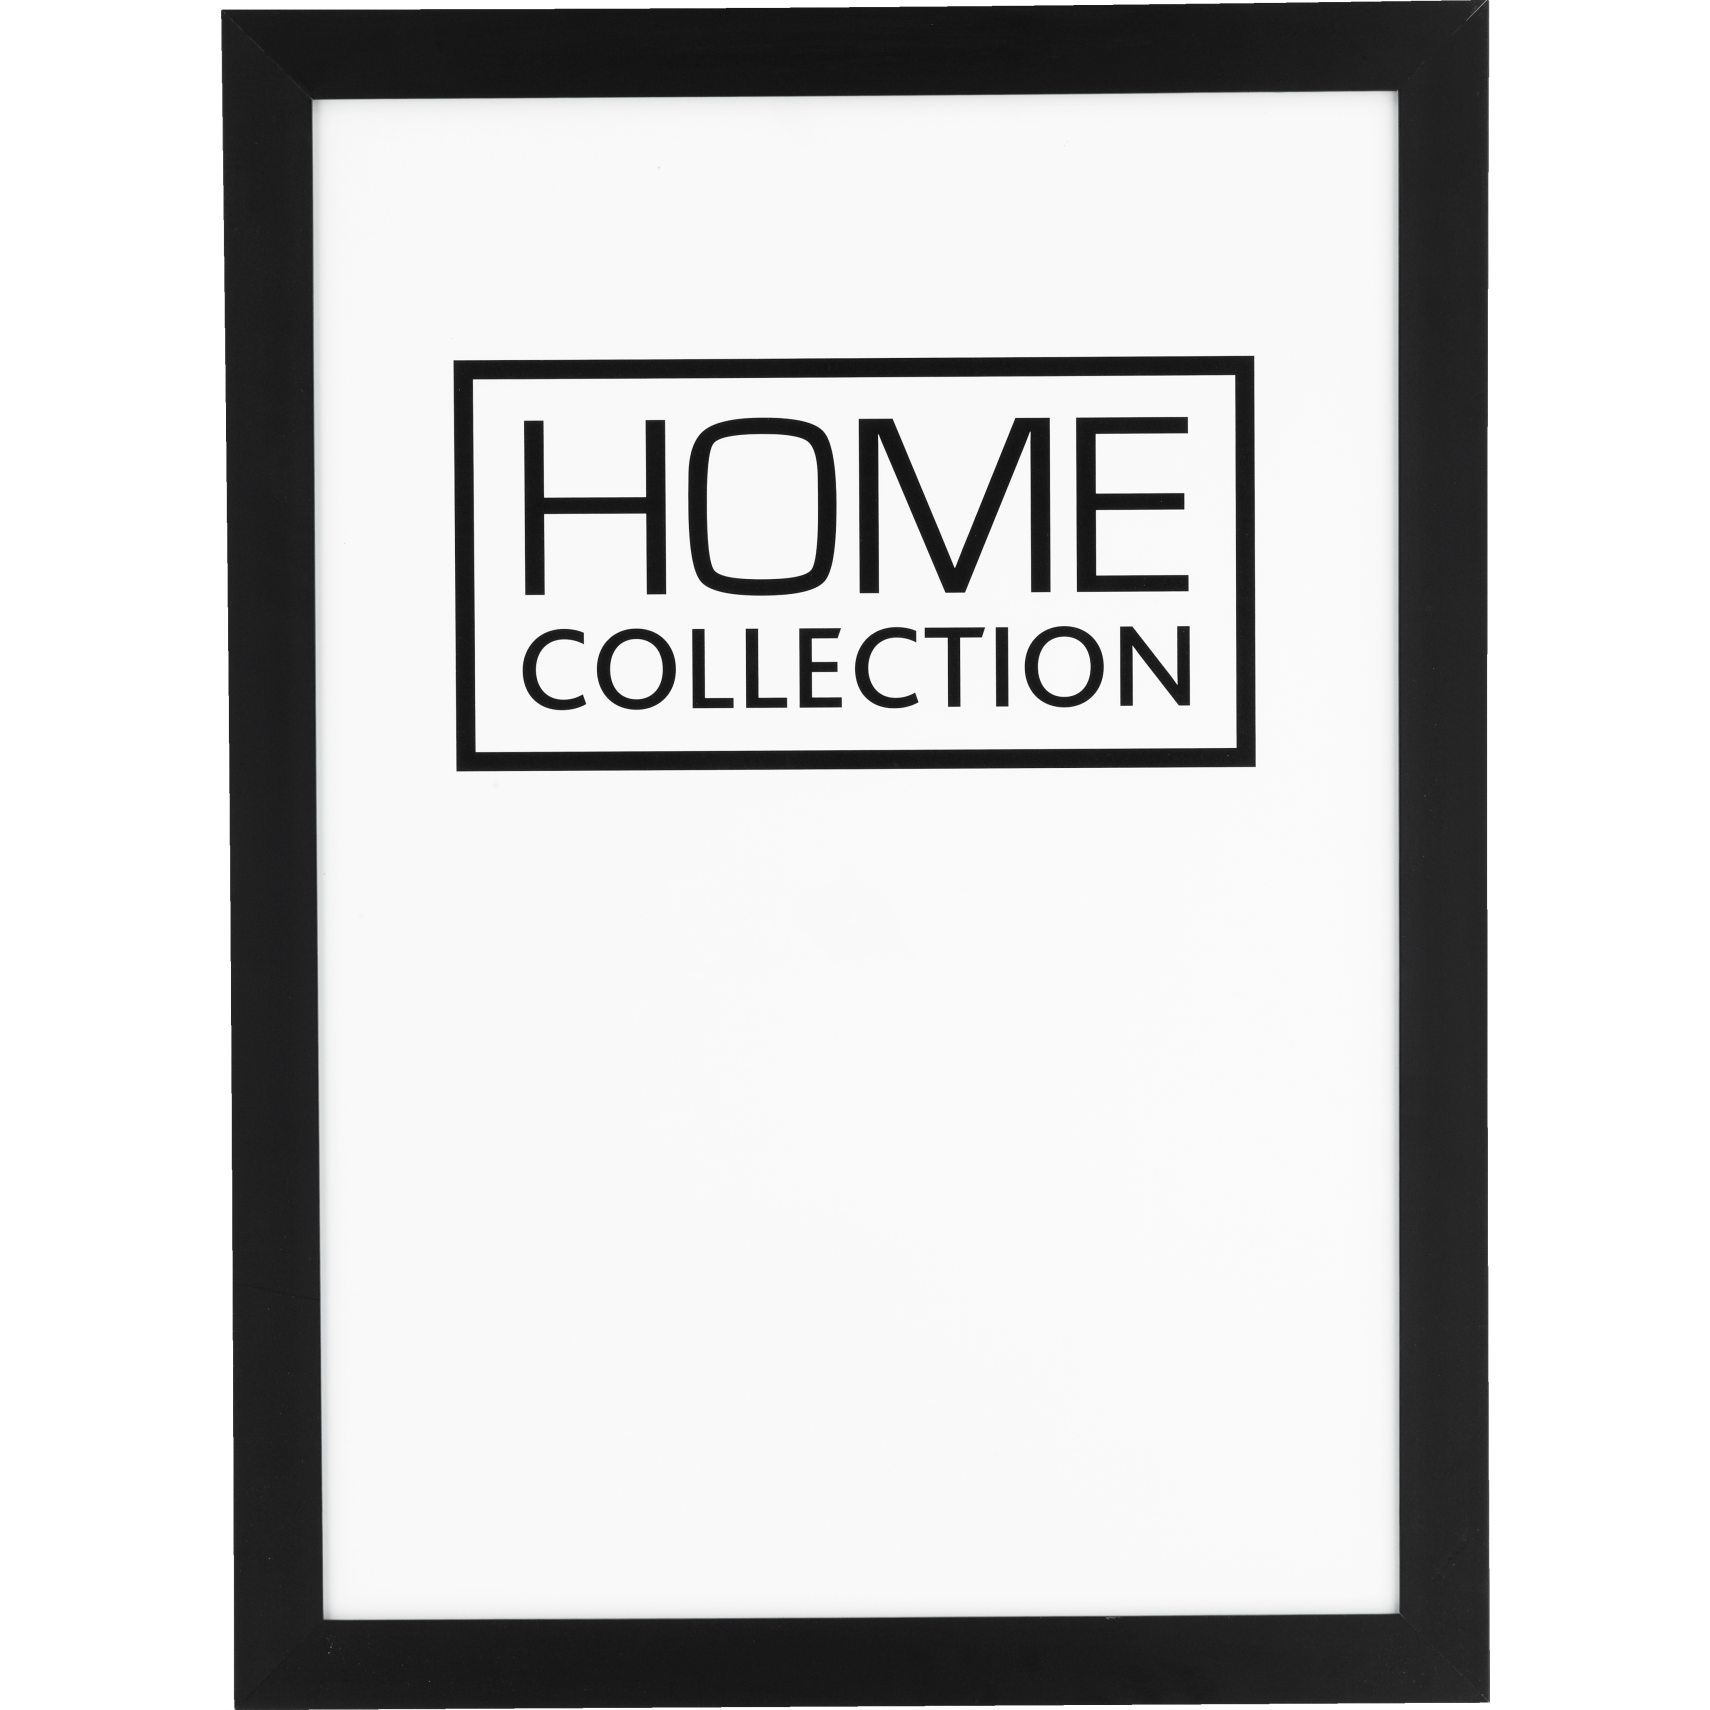 HOME COLLECTION Ram 40 x 50 x 2 cm